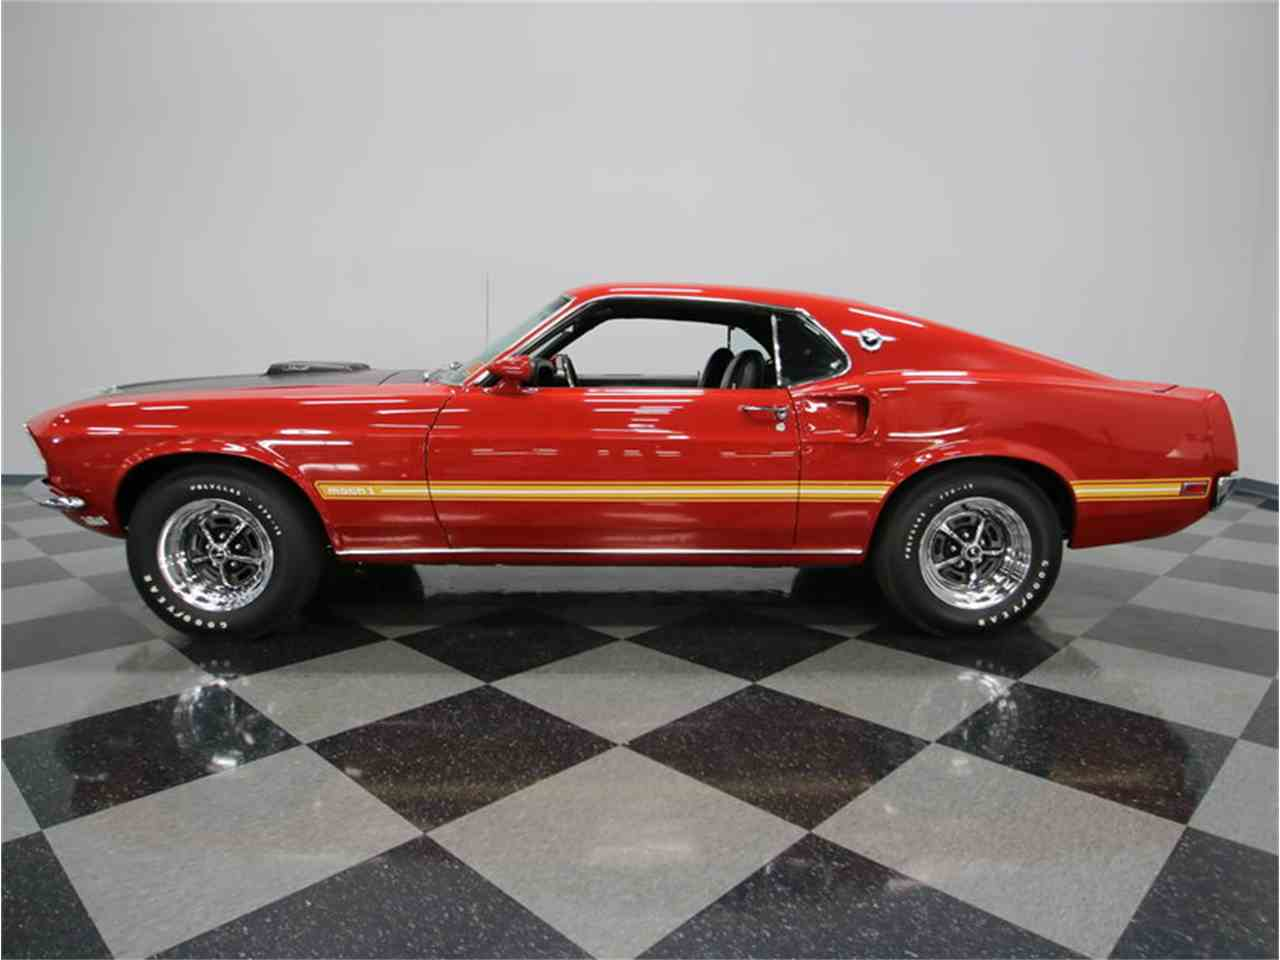 Ford Mustang For Sale Under 50001997 Gt 1964 1969 Mach 1 Cobra Jet Classiccars